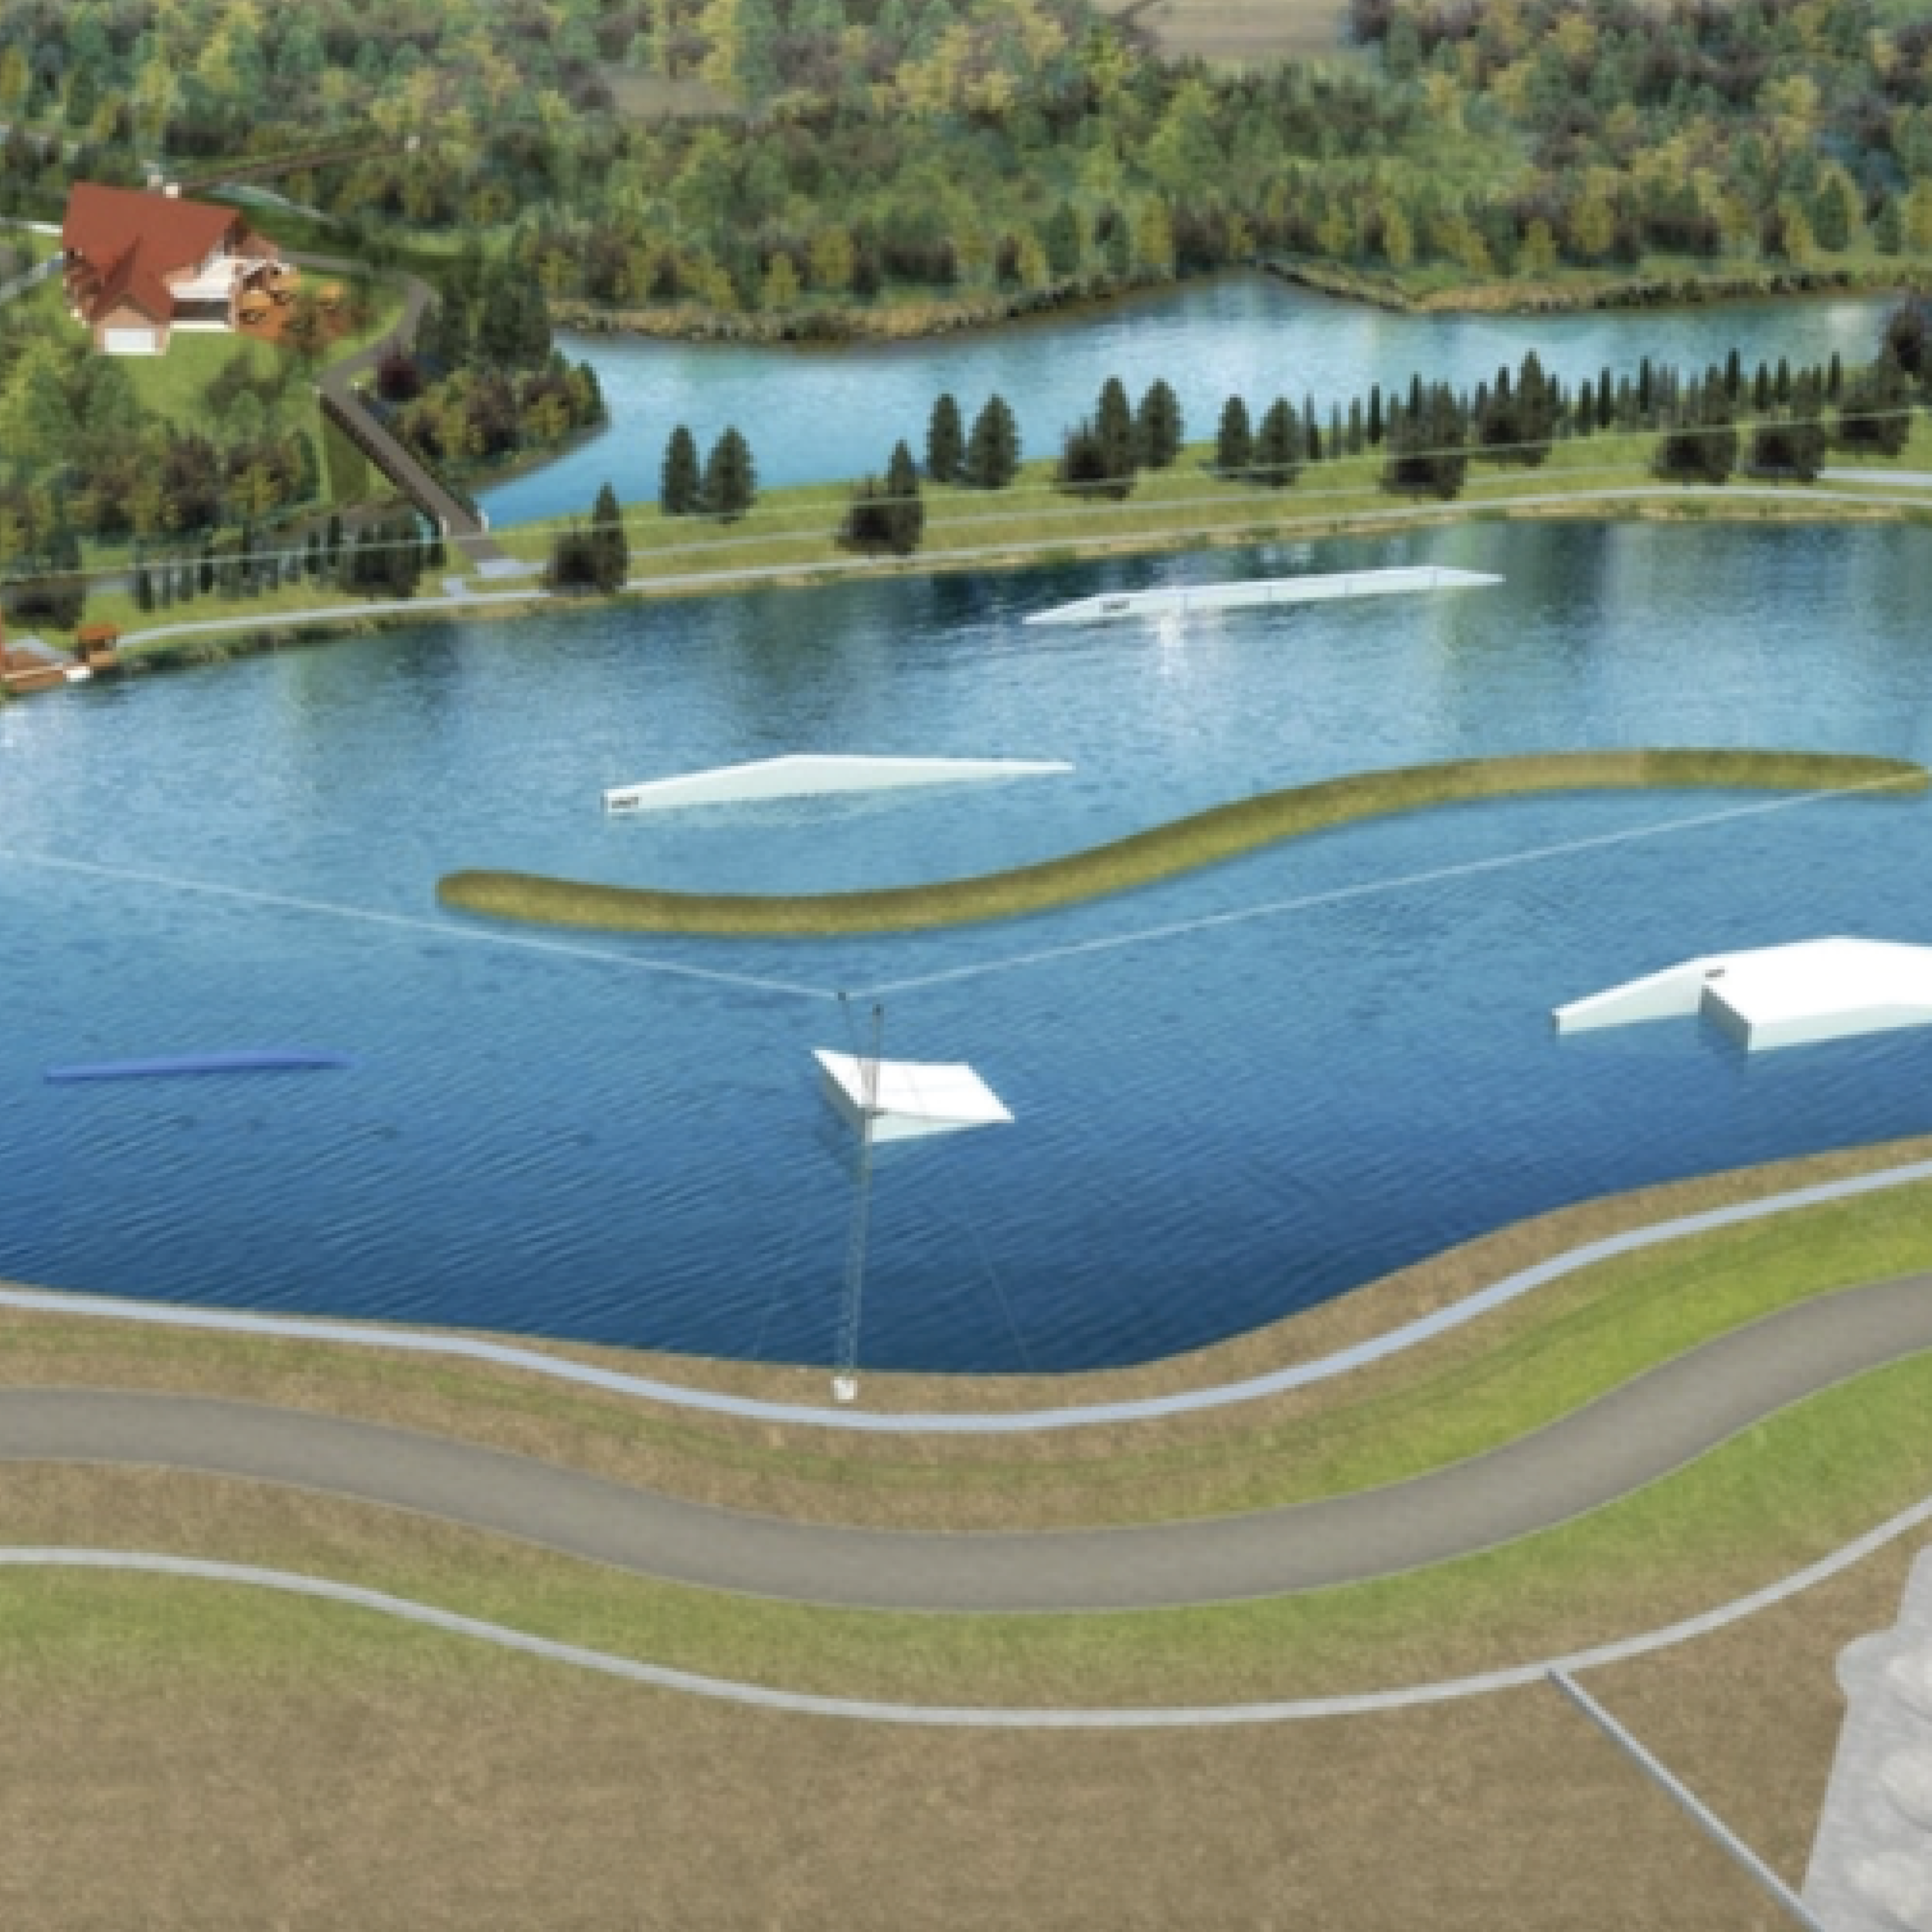 SOUTHTOWN WAKE PARK - Southtown branches out to bring the only wake park in the Southeast region